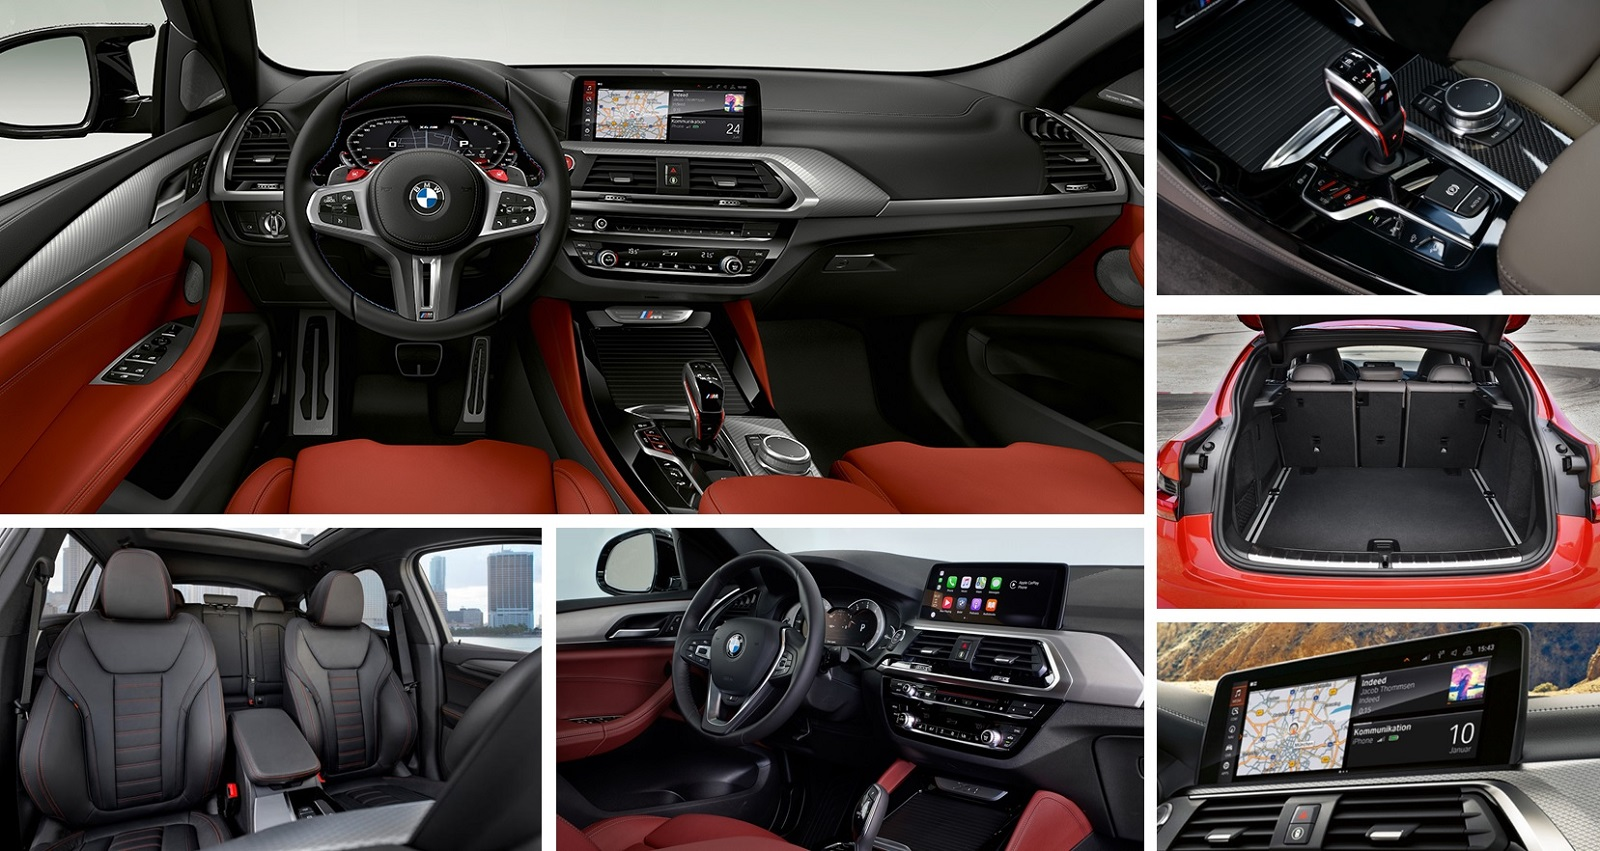 2020 BMW X4 M in Vancouver Interior Design, Infotainment, capacity and seating